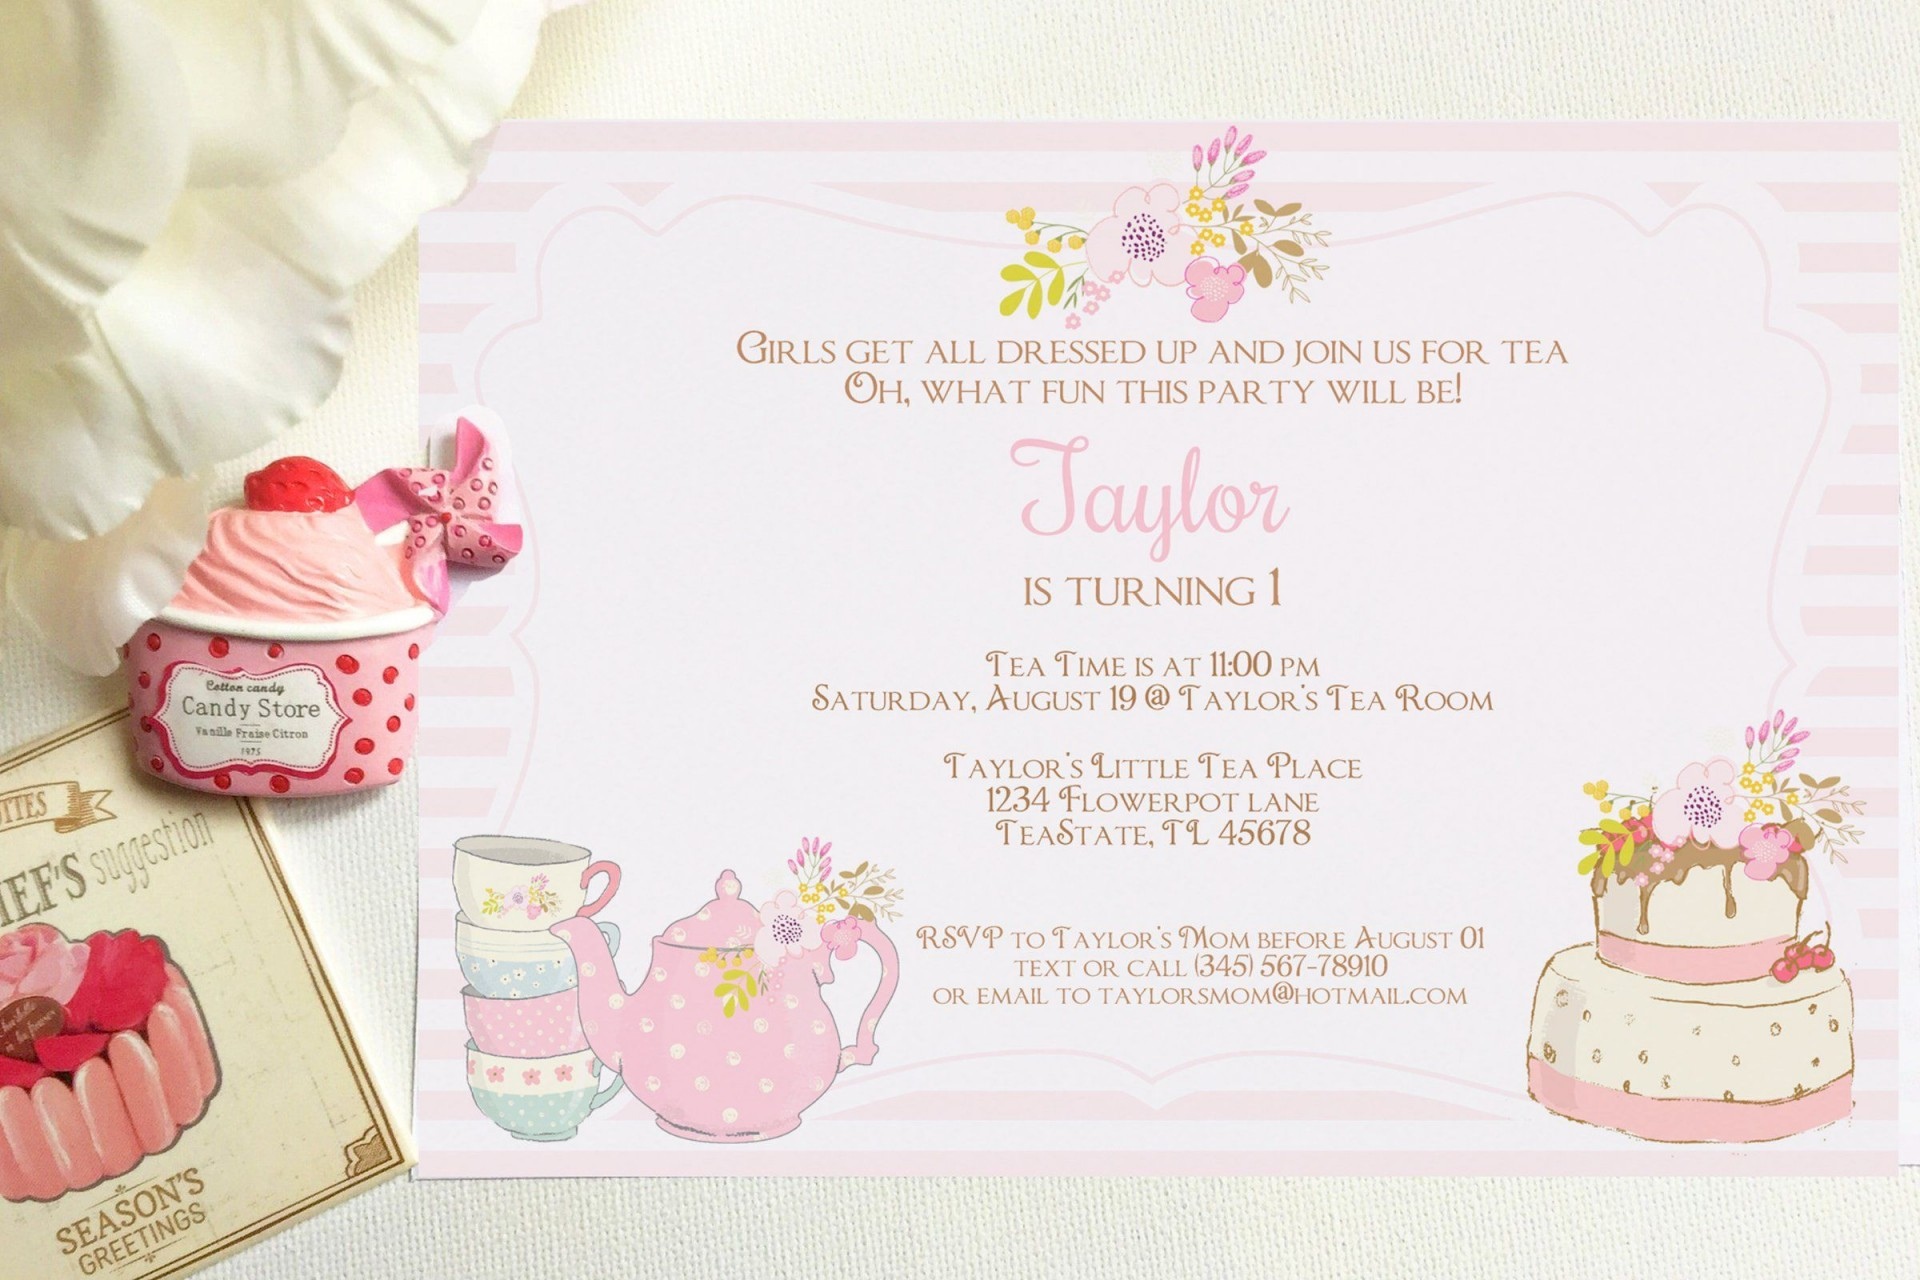 008 Outstanding Tea Party Invitation Template High Definition  Card Victorian Wording For Bridal Shower1920